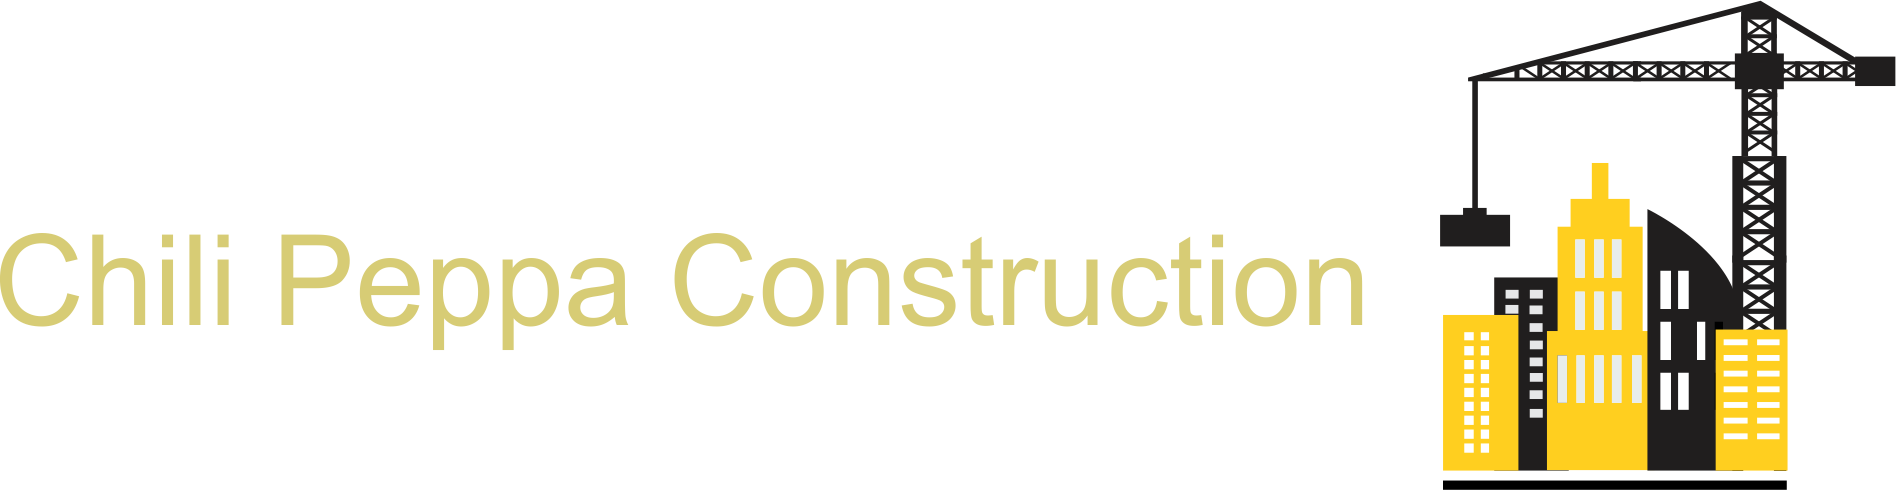 Chili Peppa Construction Logo